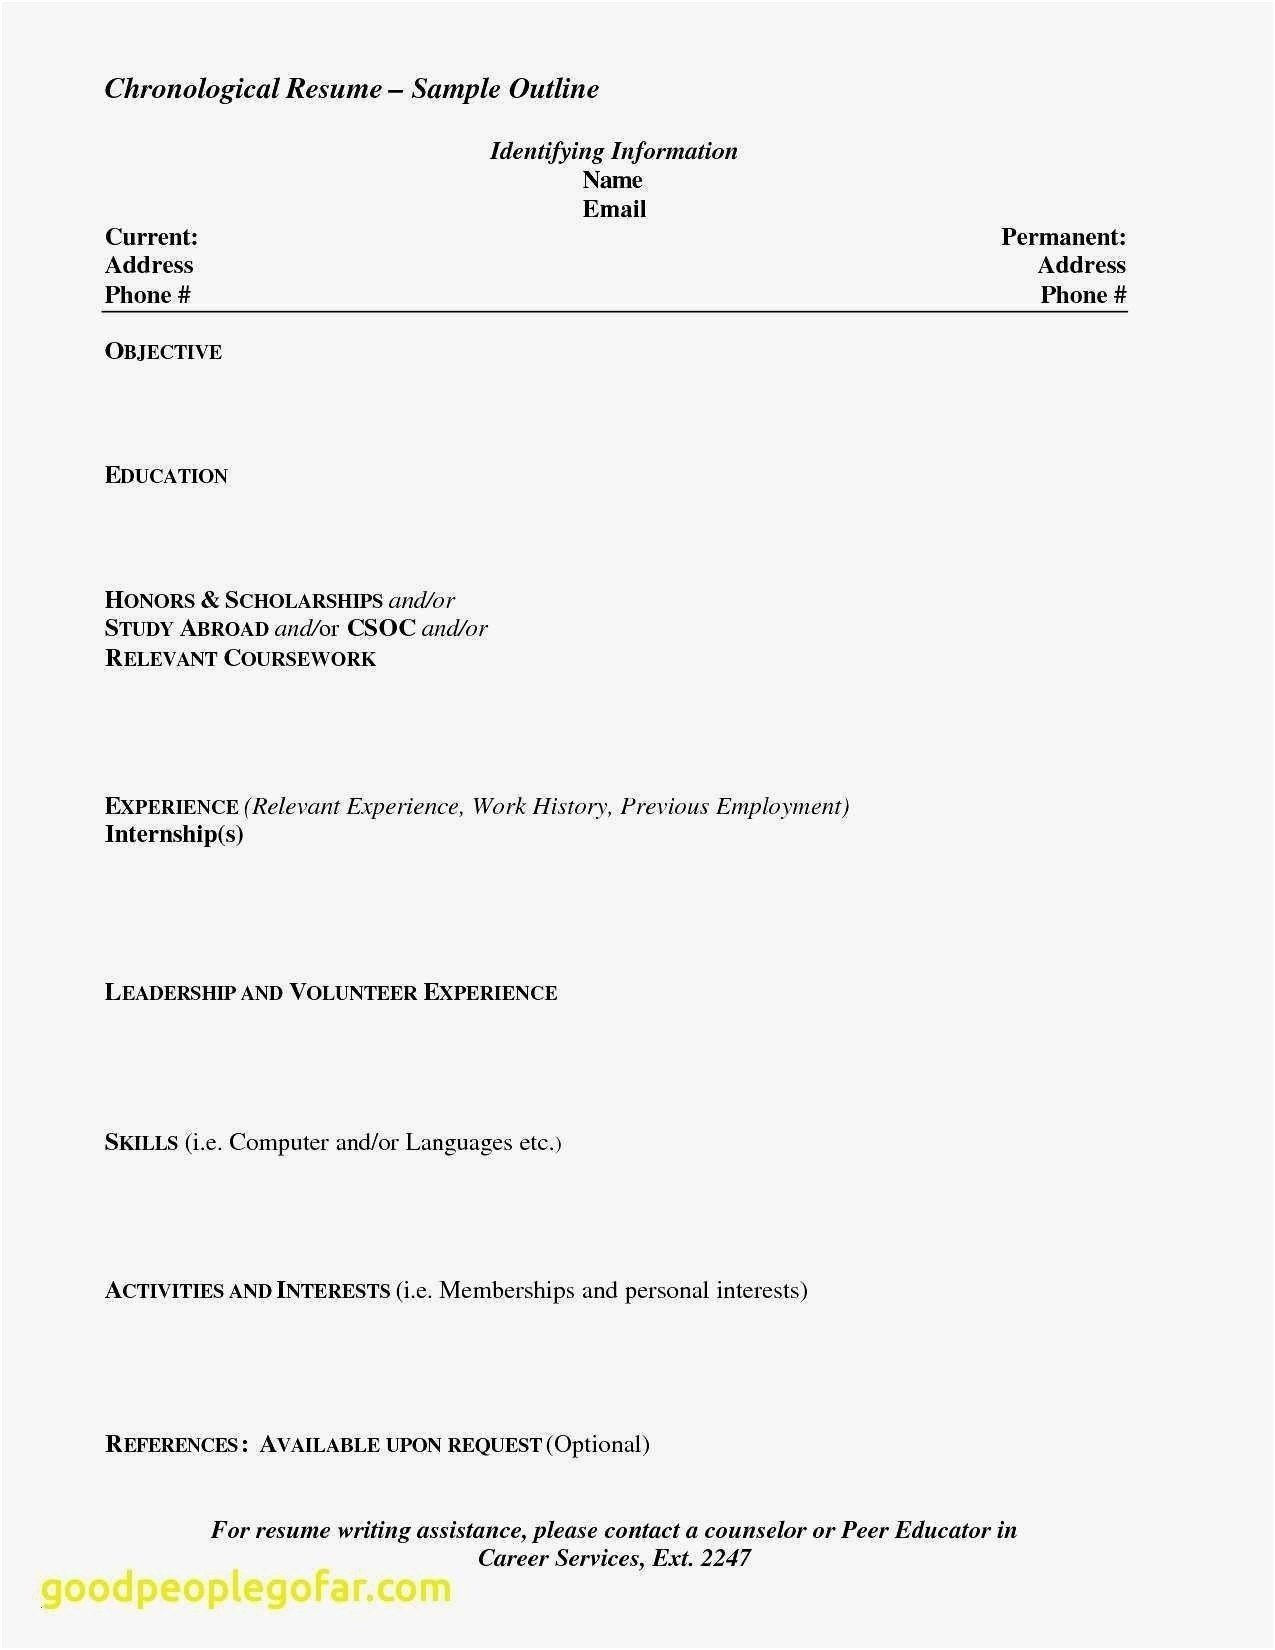 Sample Acting Resume - Actors Resume format Luxury How to Make An Acting Resume Beautiful